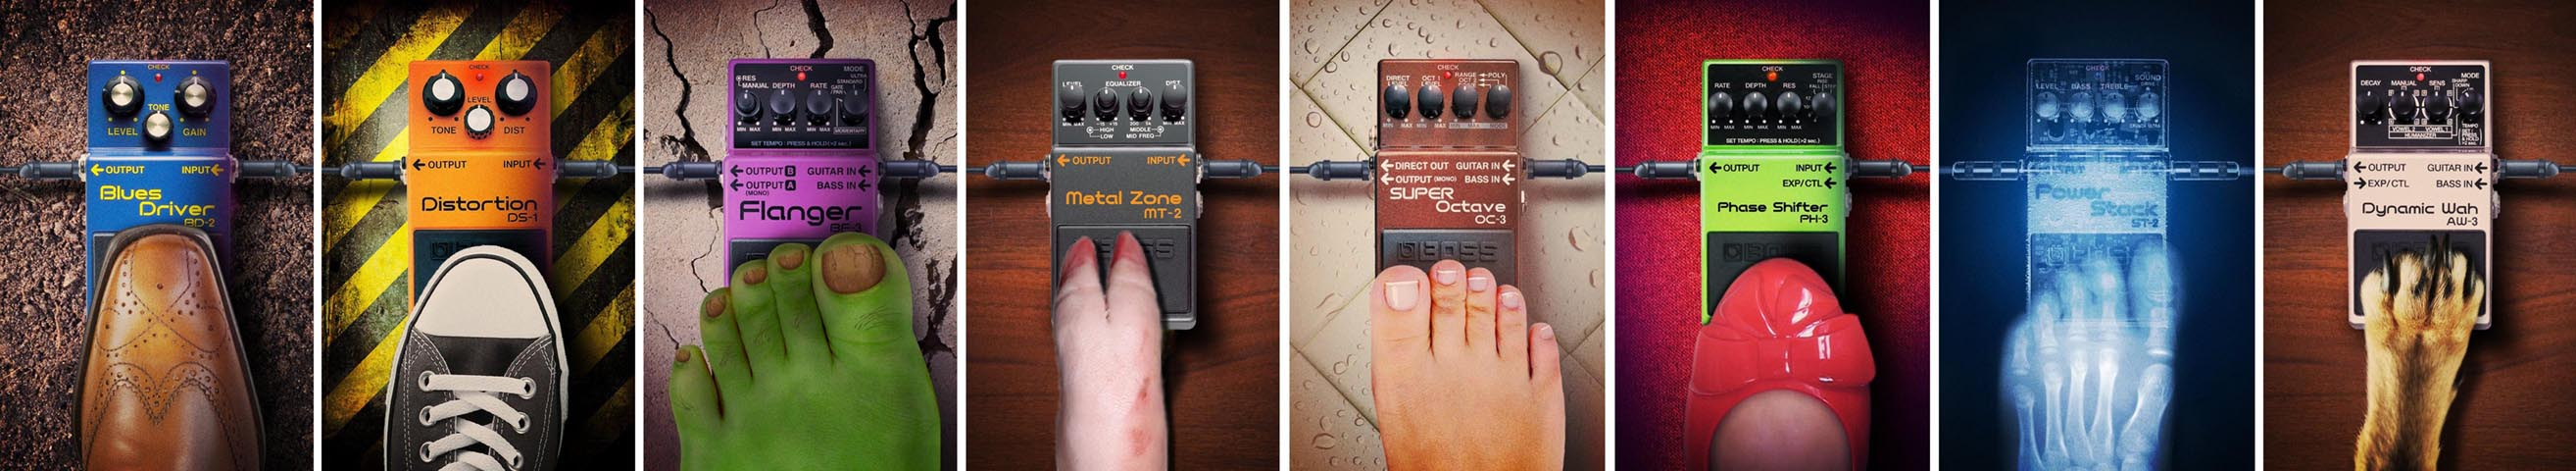 Boss Pedals Tube Sound